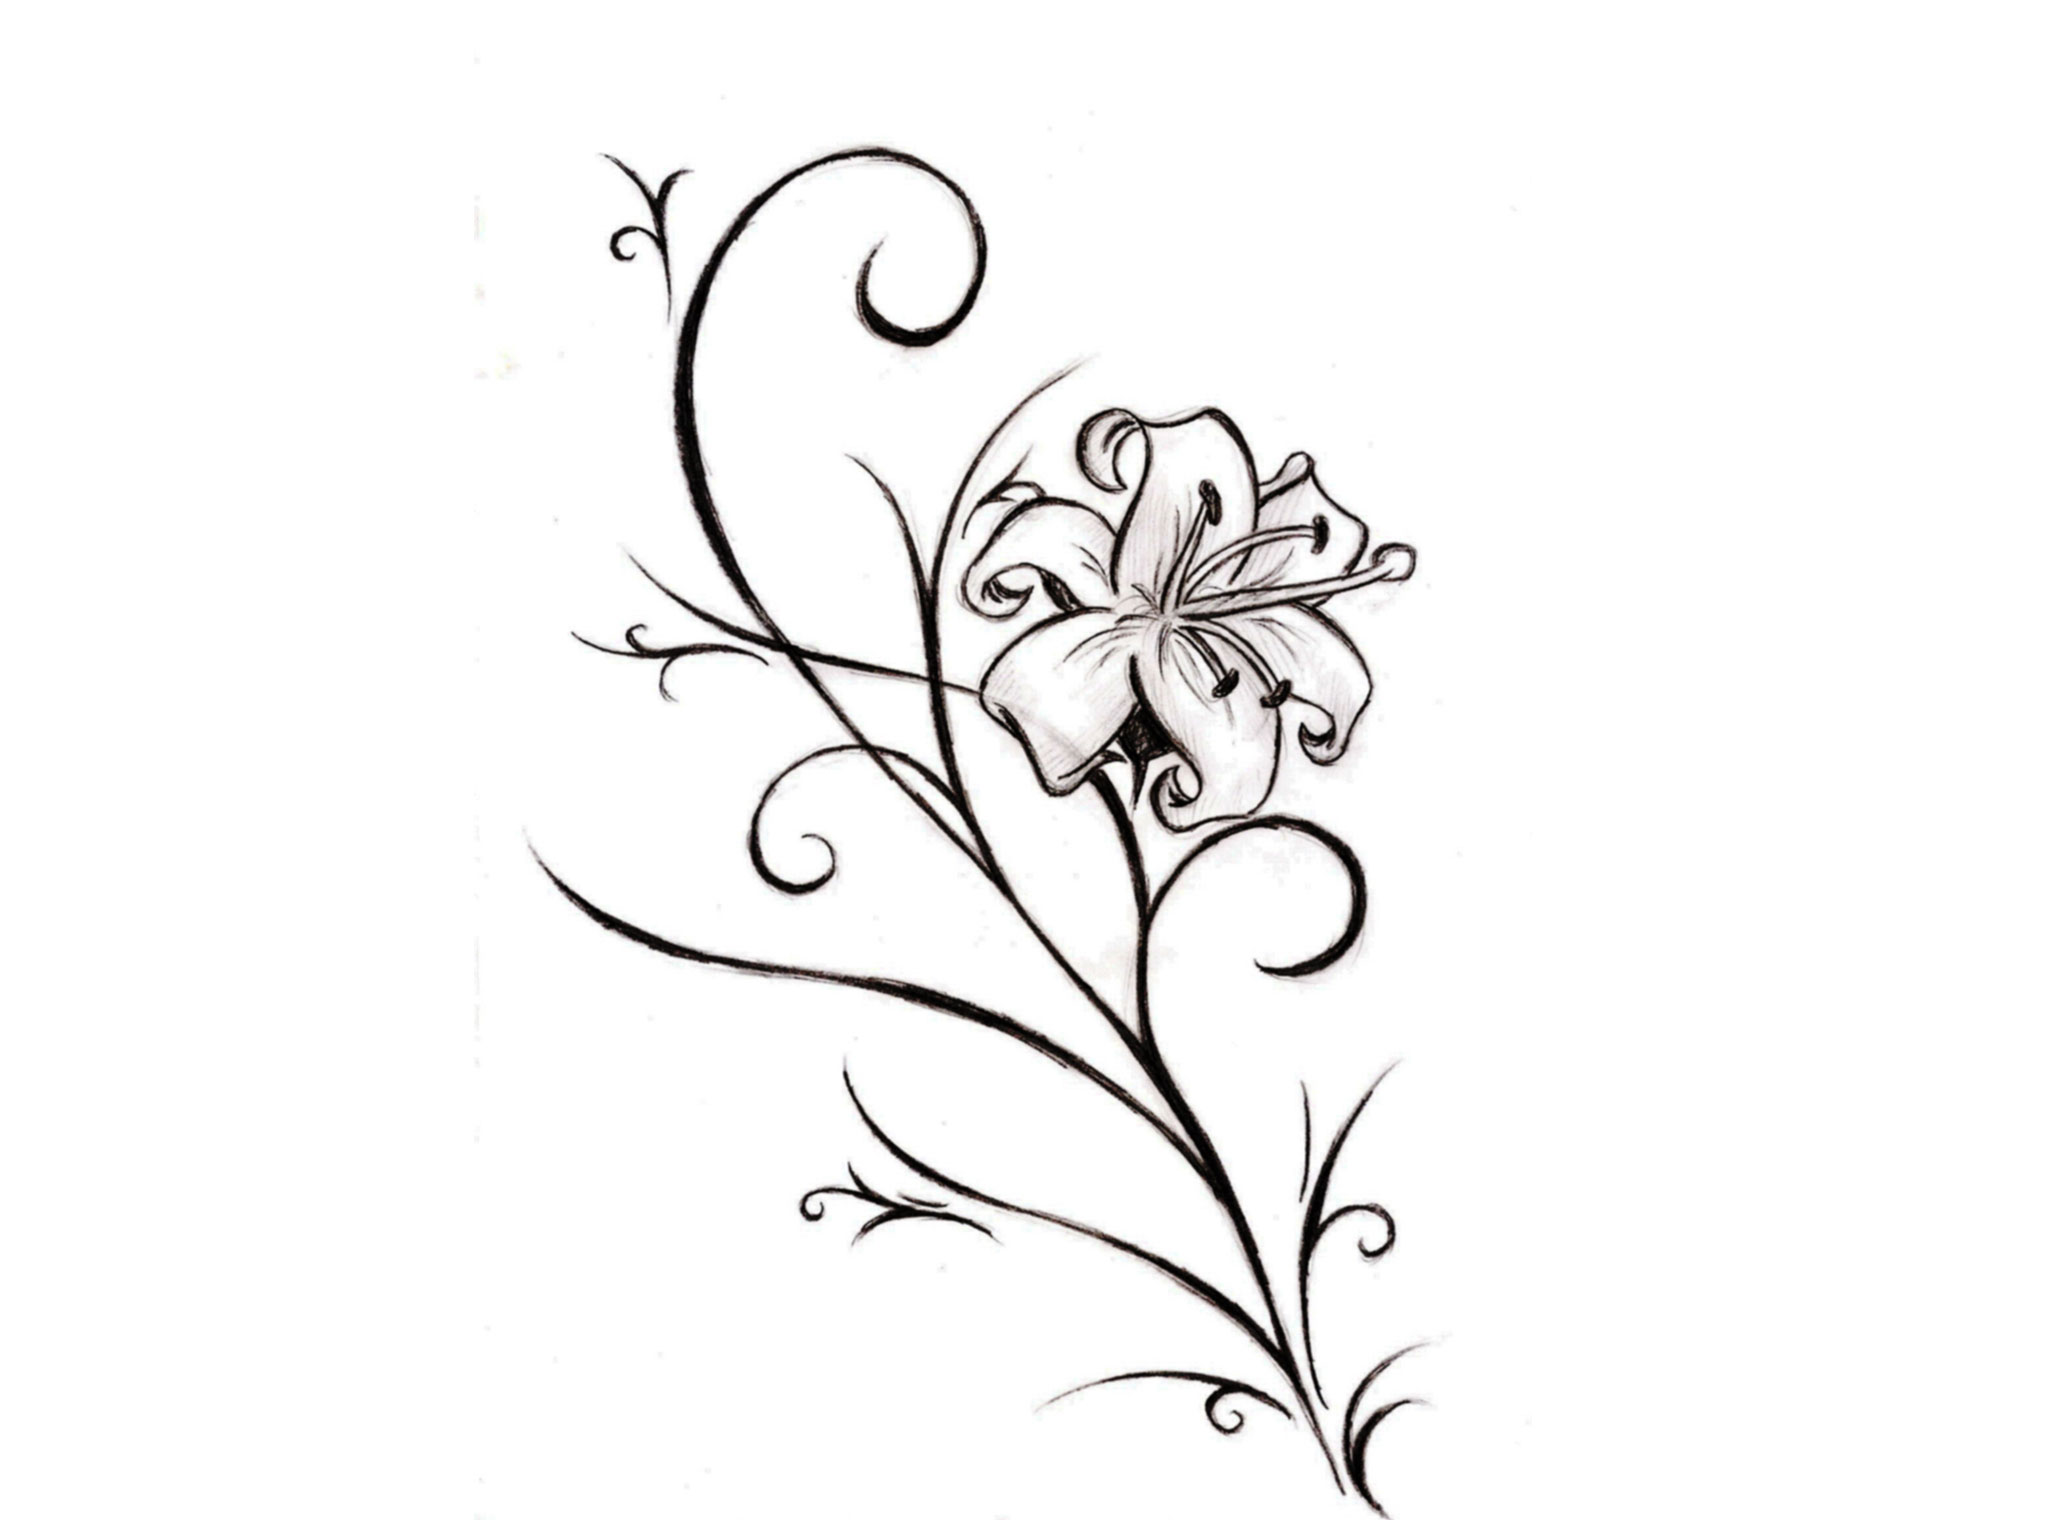 Cool Tattoo Drawing At Getdrawings Com Free For Personal Use Cool